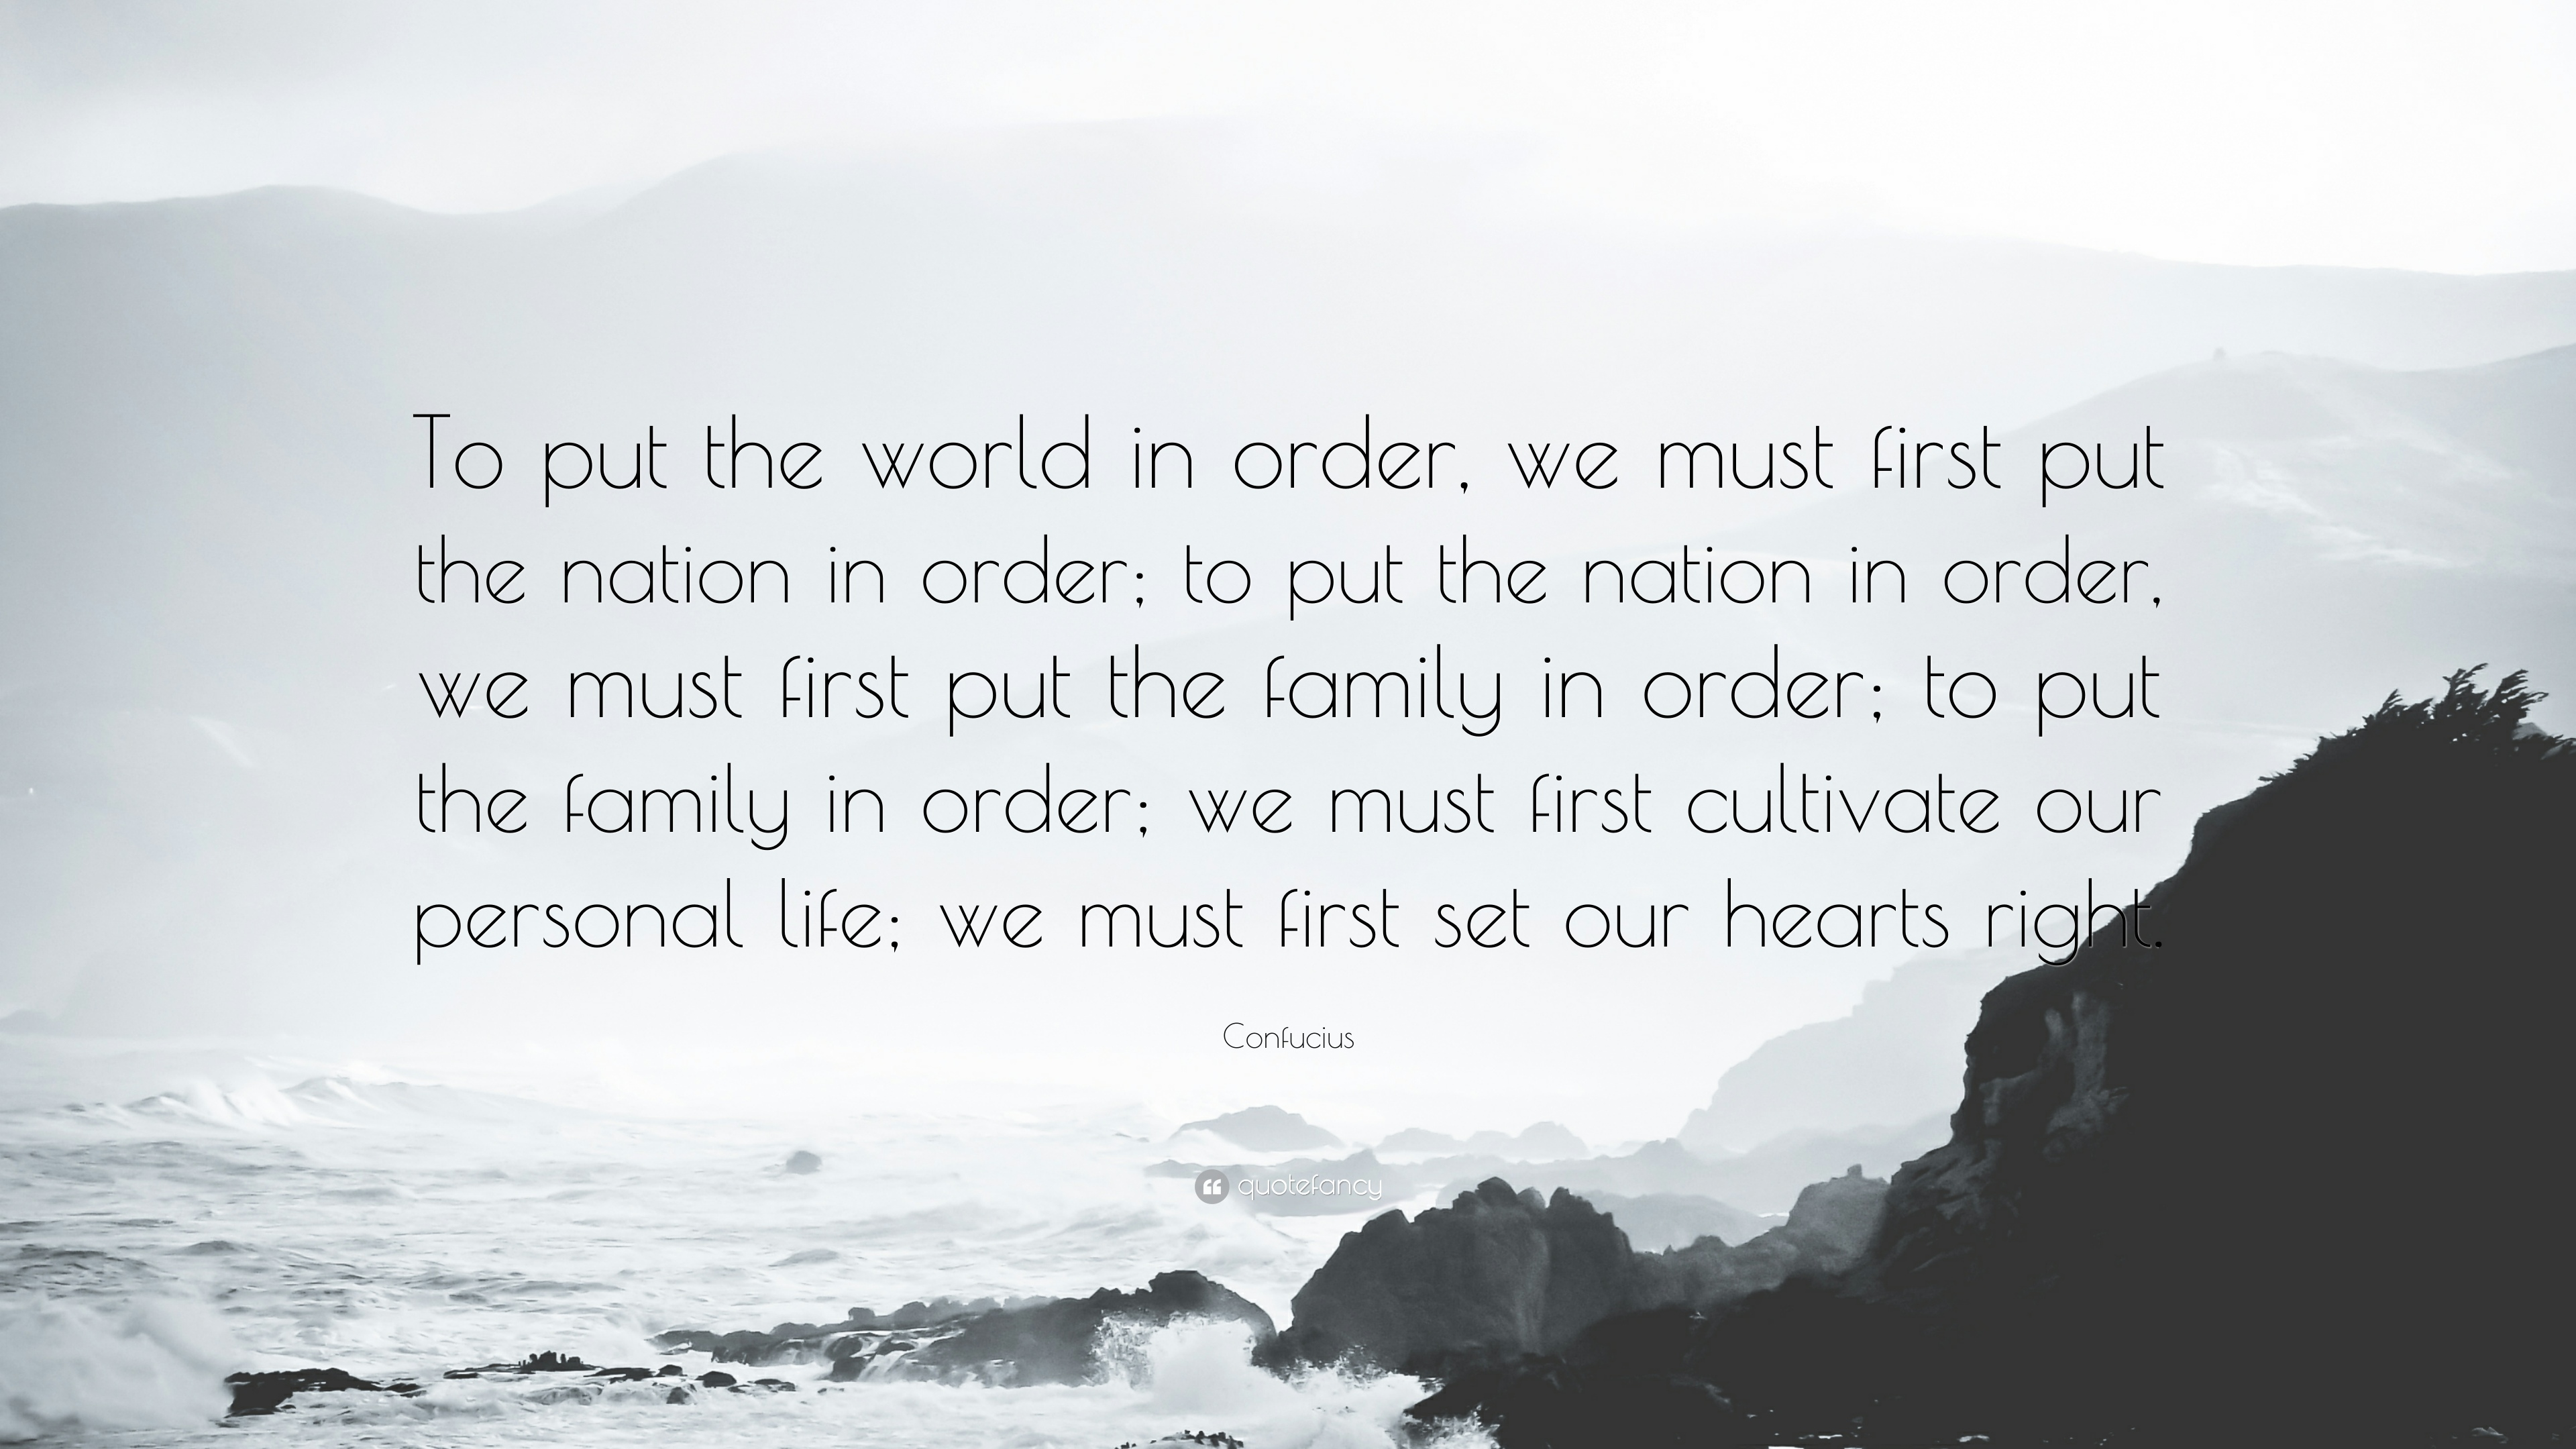 confucius quote to put the world in order we must first put the